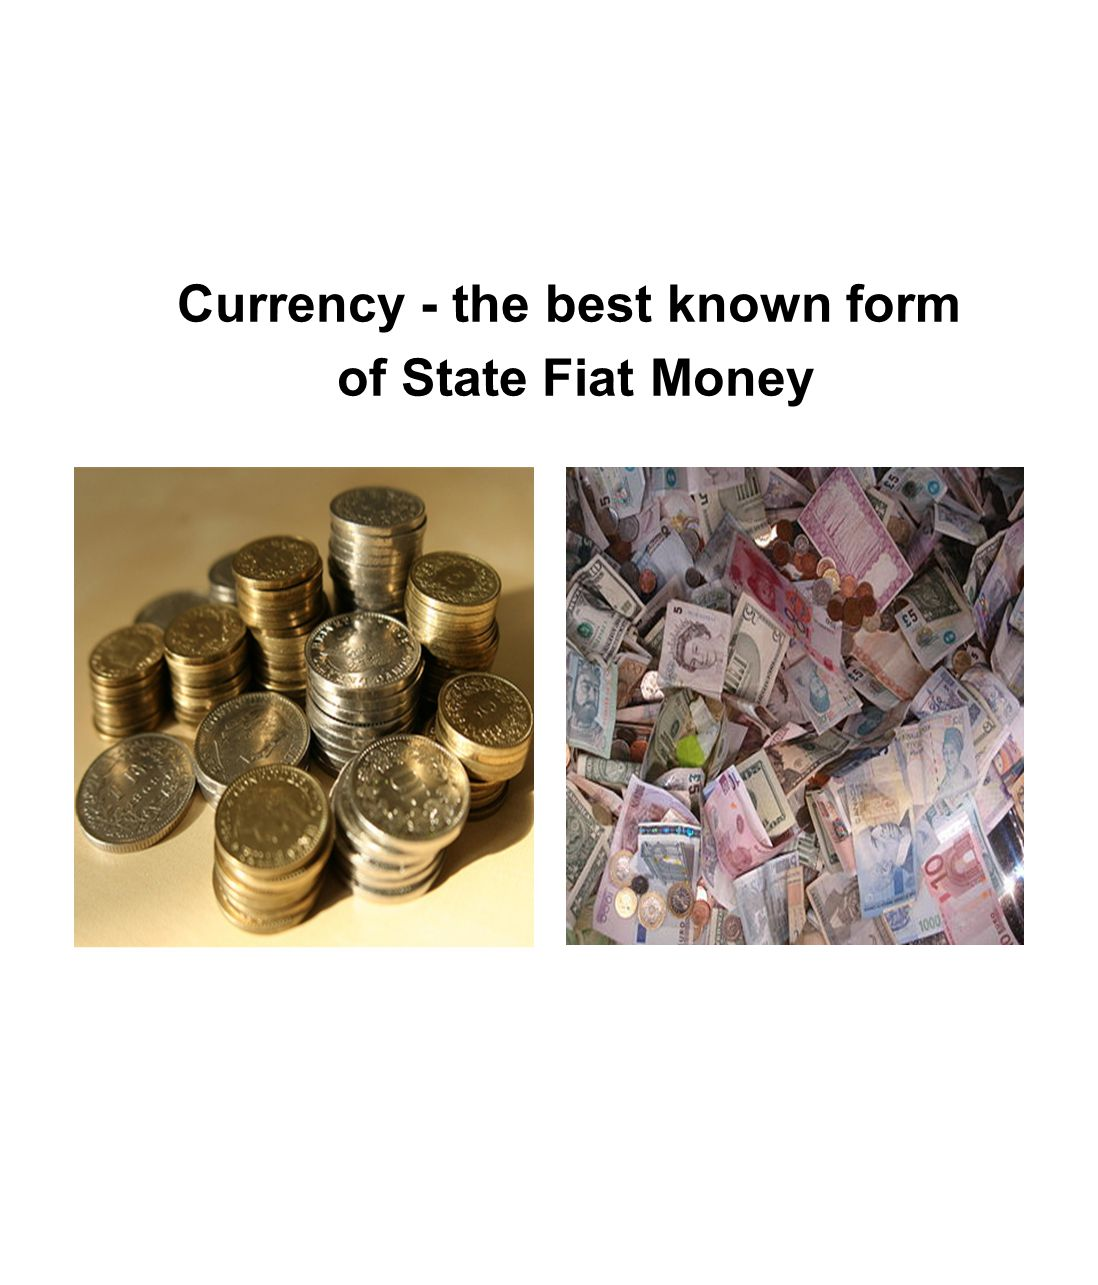 Currency - the best known form of State Fiat Money